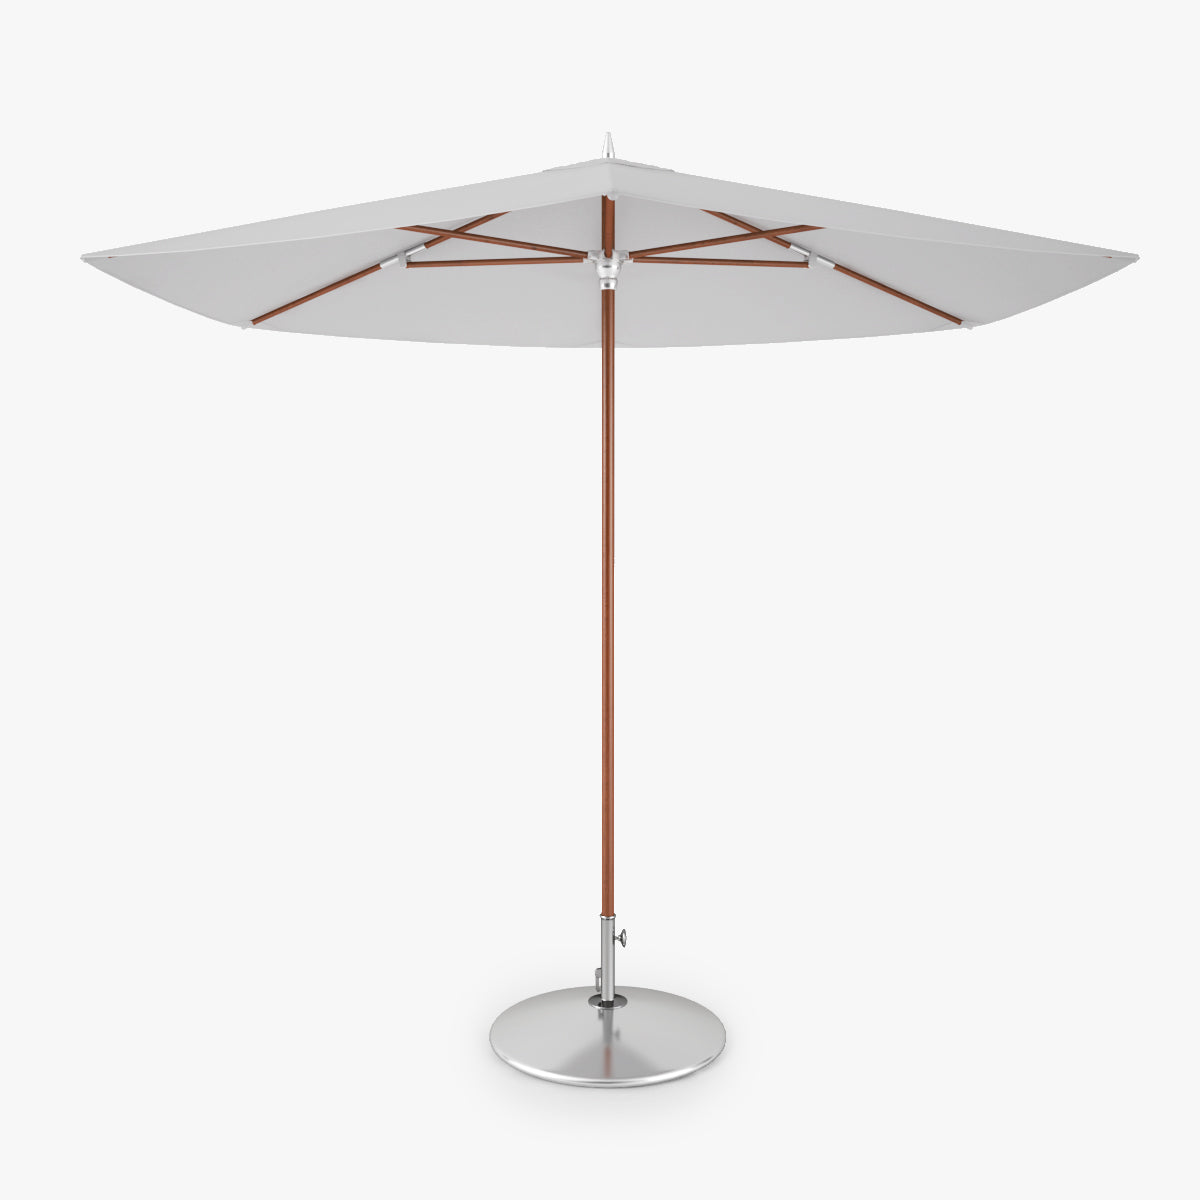 FREE Dedon Parasol Hexagon 3D Model